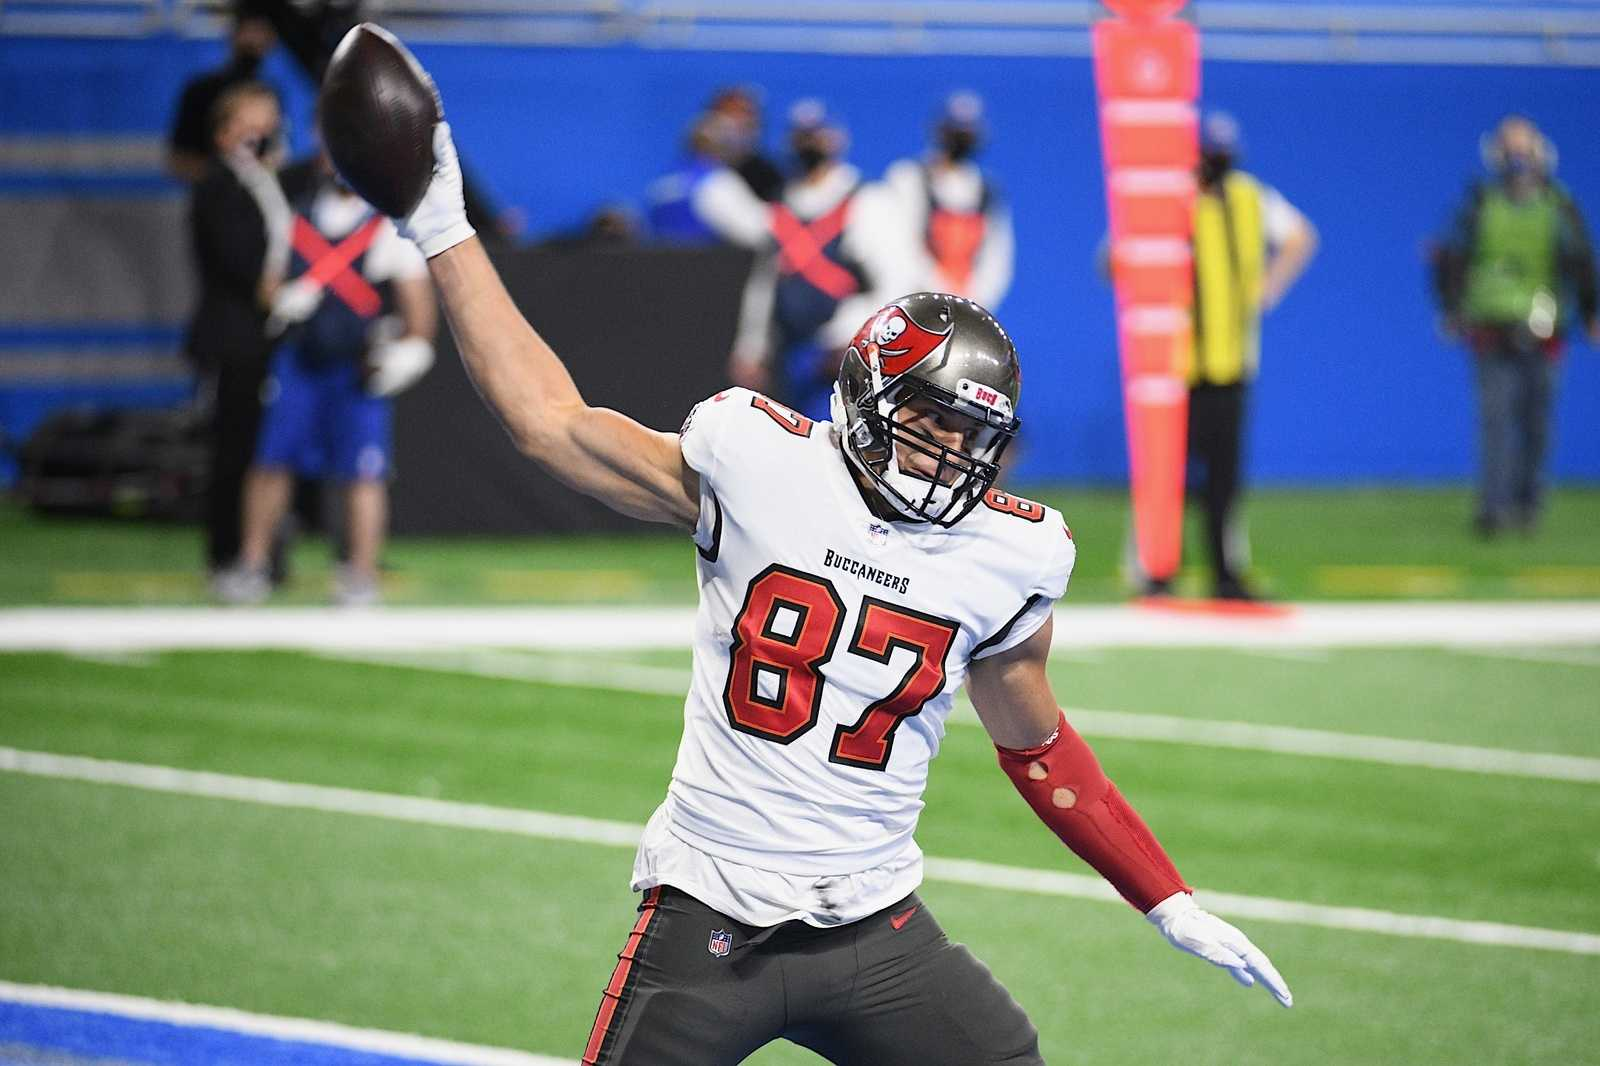 Could Tampa Bay start poaching more Patriots players?